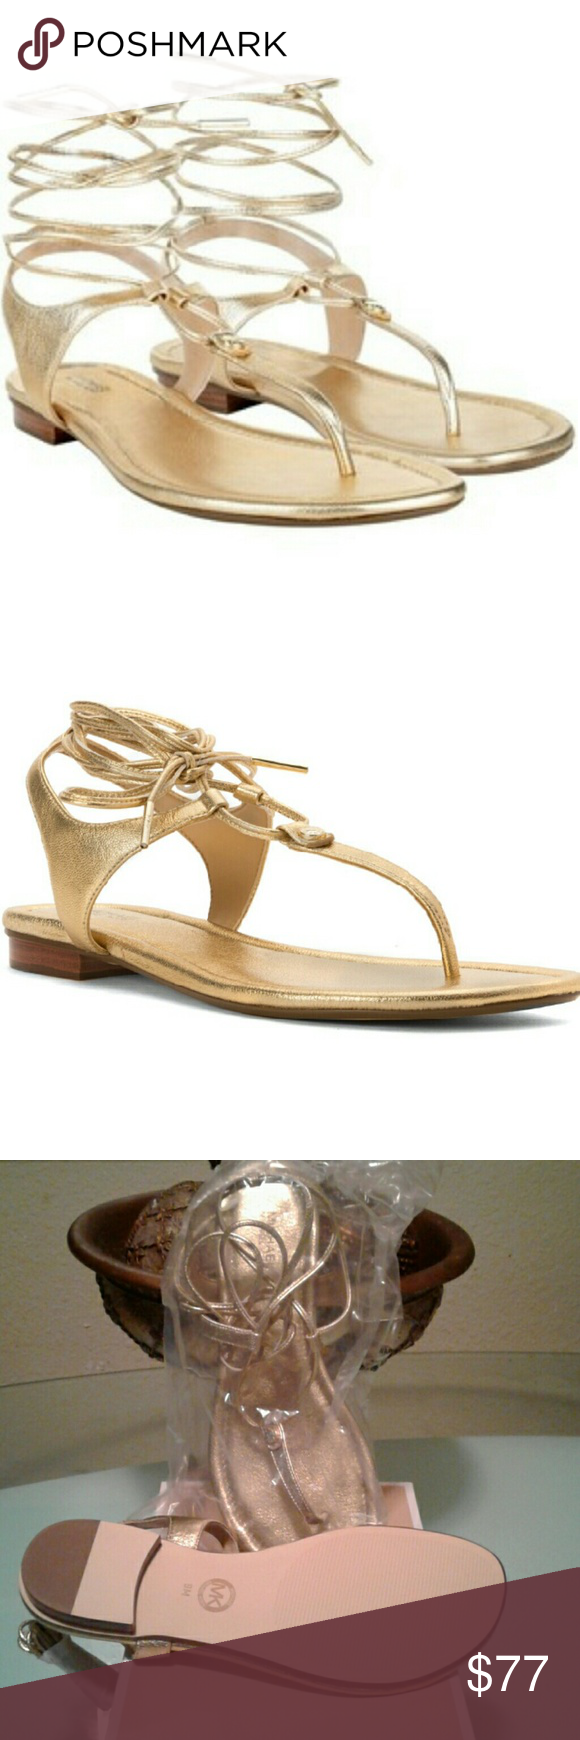 Shoes *REASONABLE OFFERS* Elegant Ankle lacing provides cushion footbed & reliable padding Michael Kors Shoes Sandals